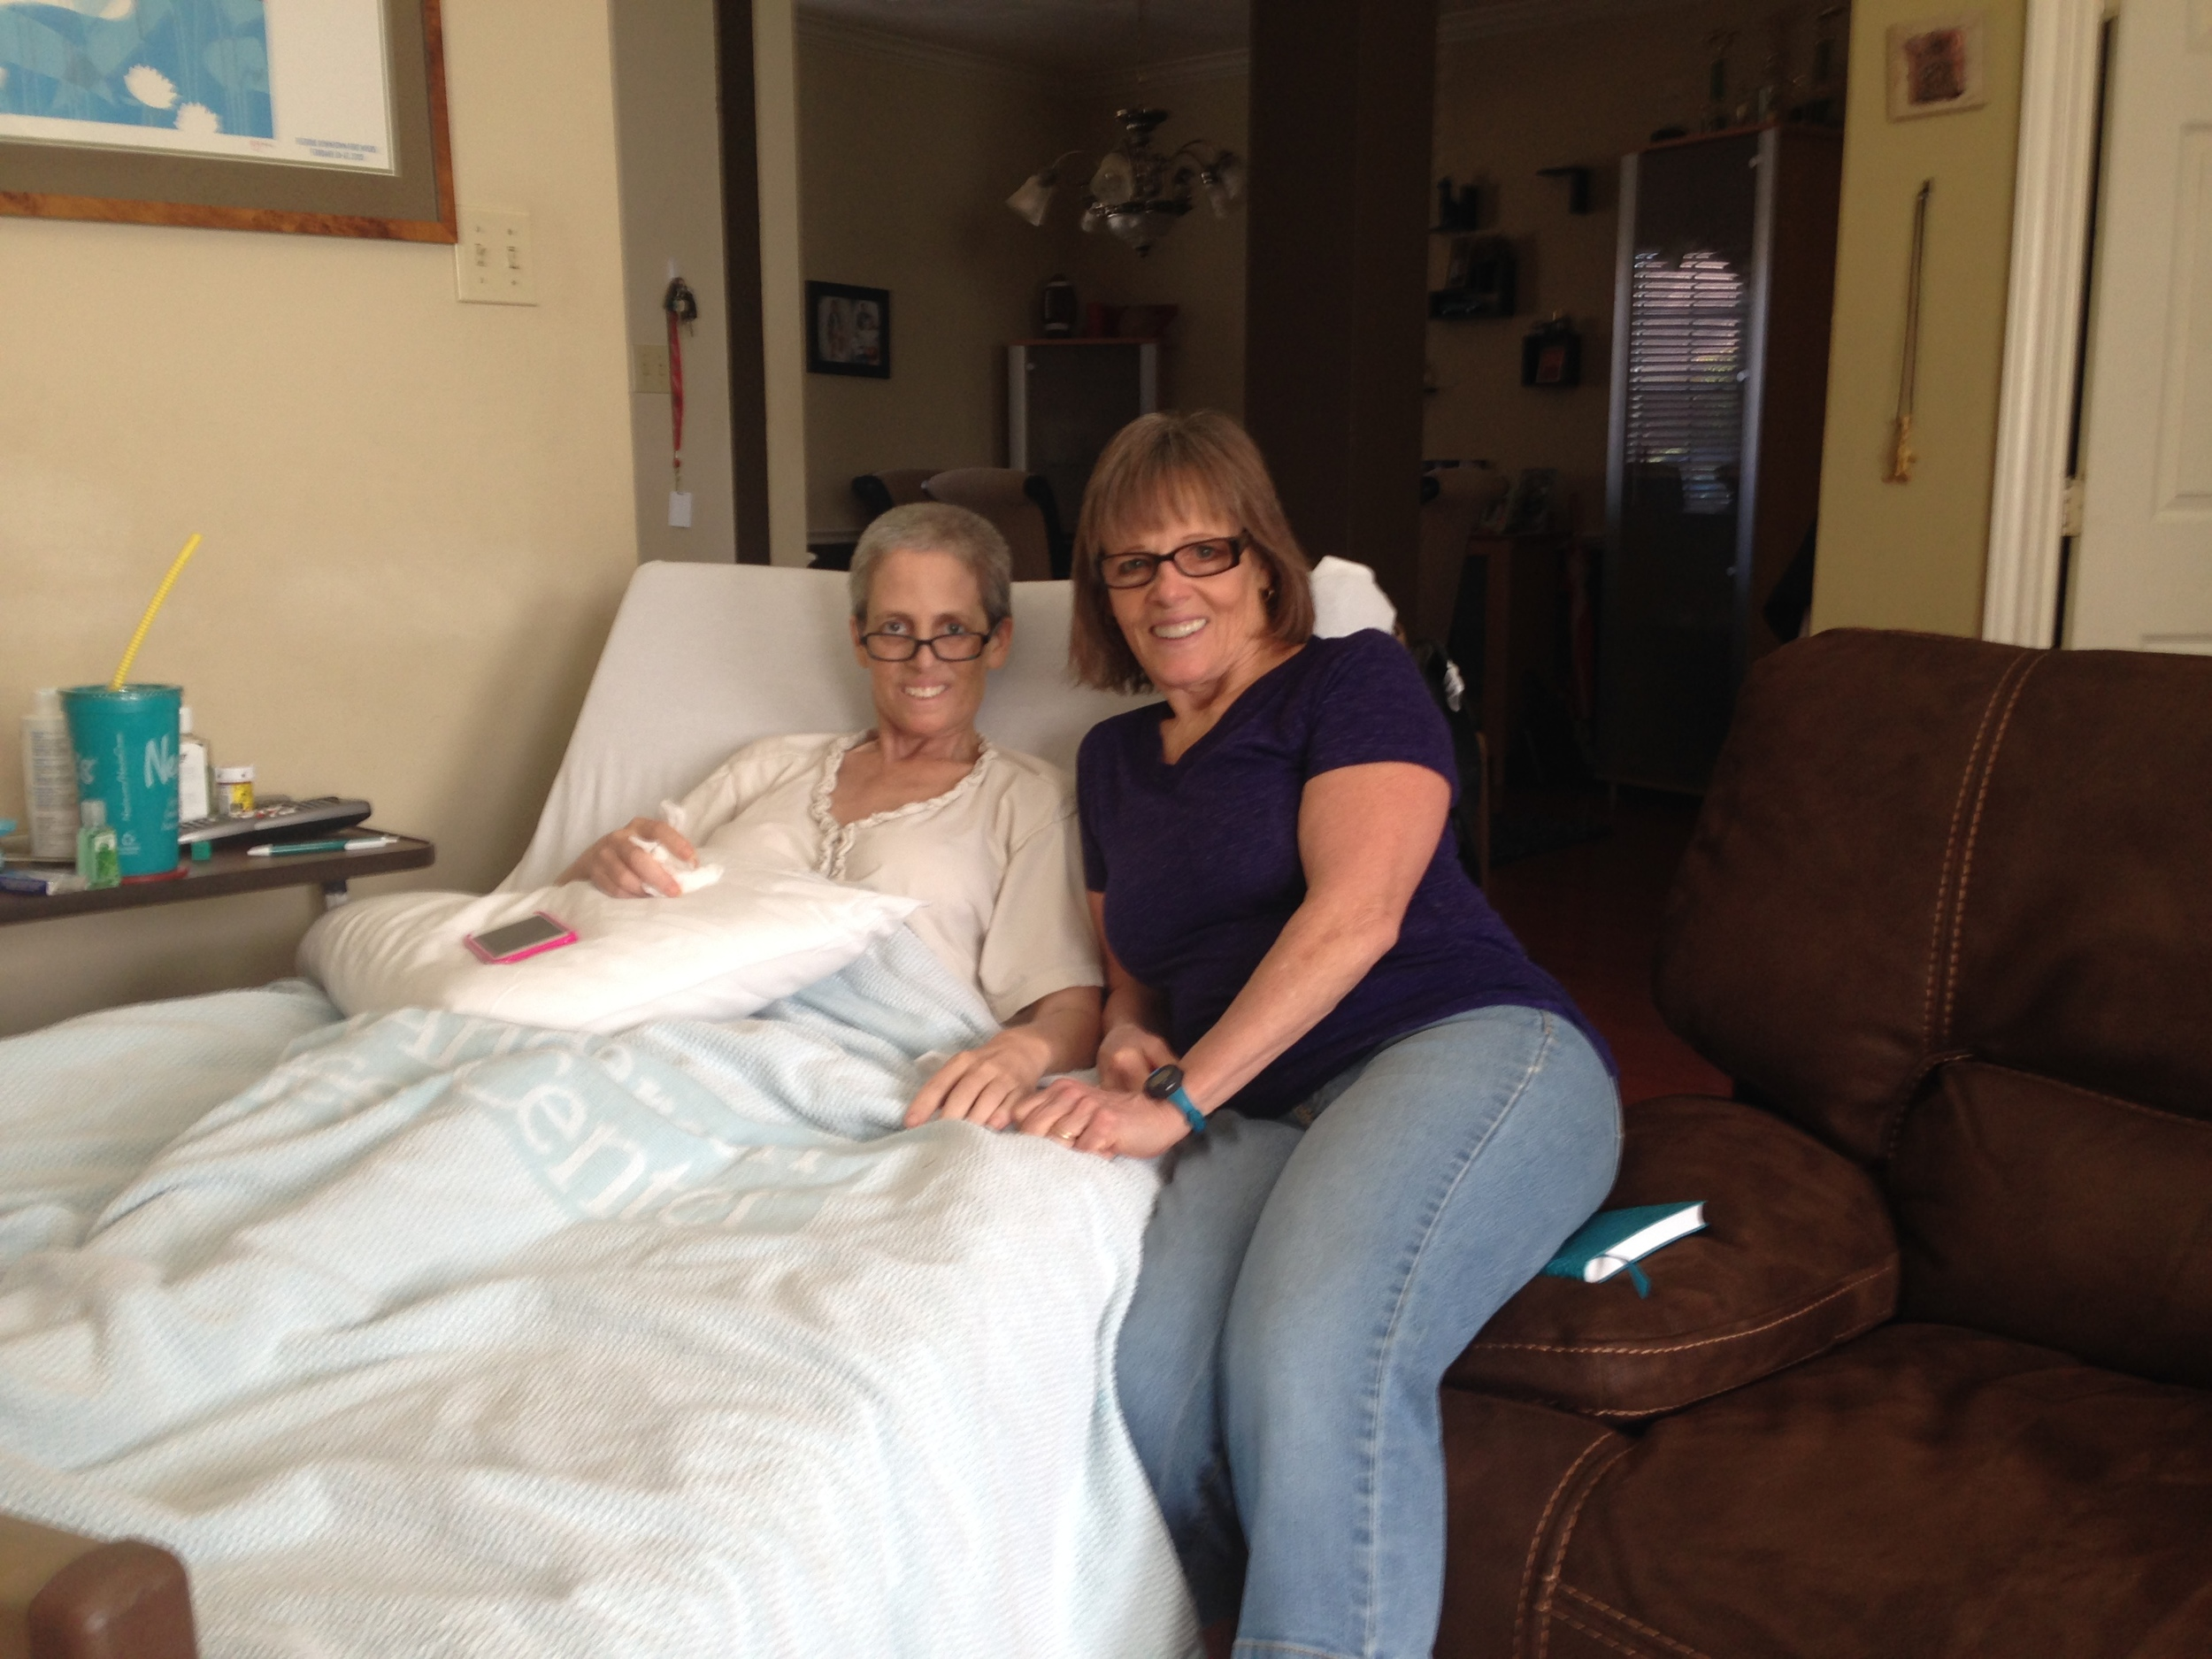 Keri, with her mother, Leanne. You can tell what a sweetheart Keri is.